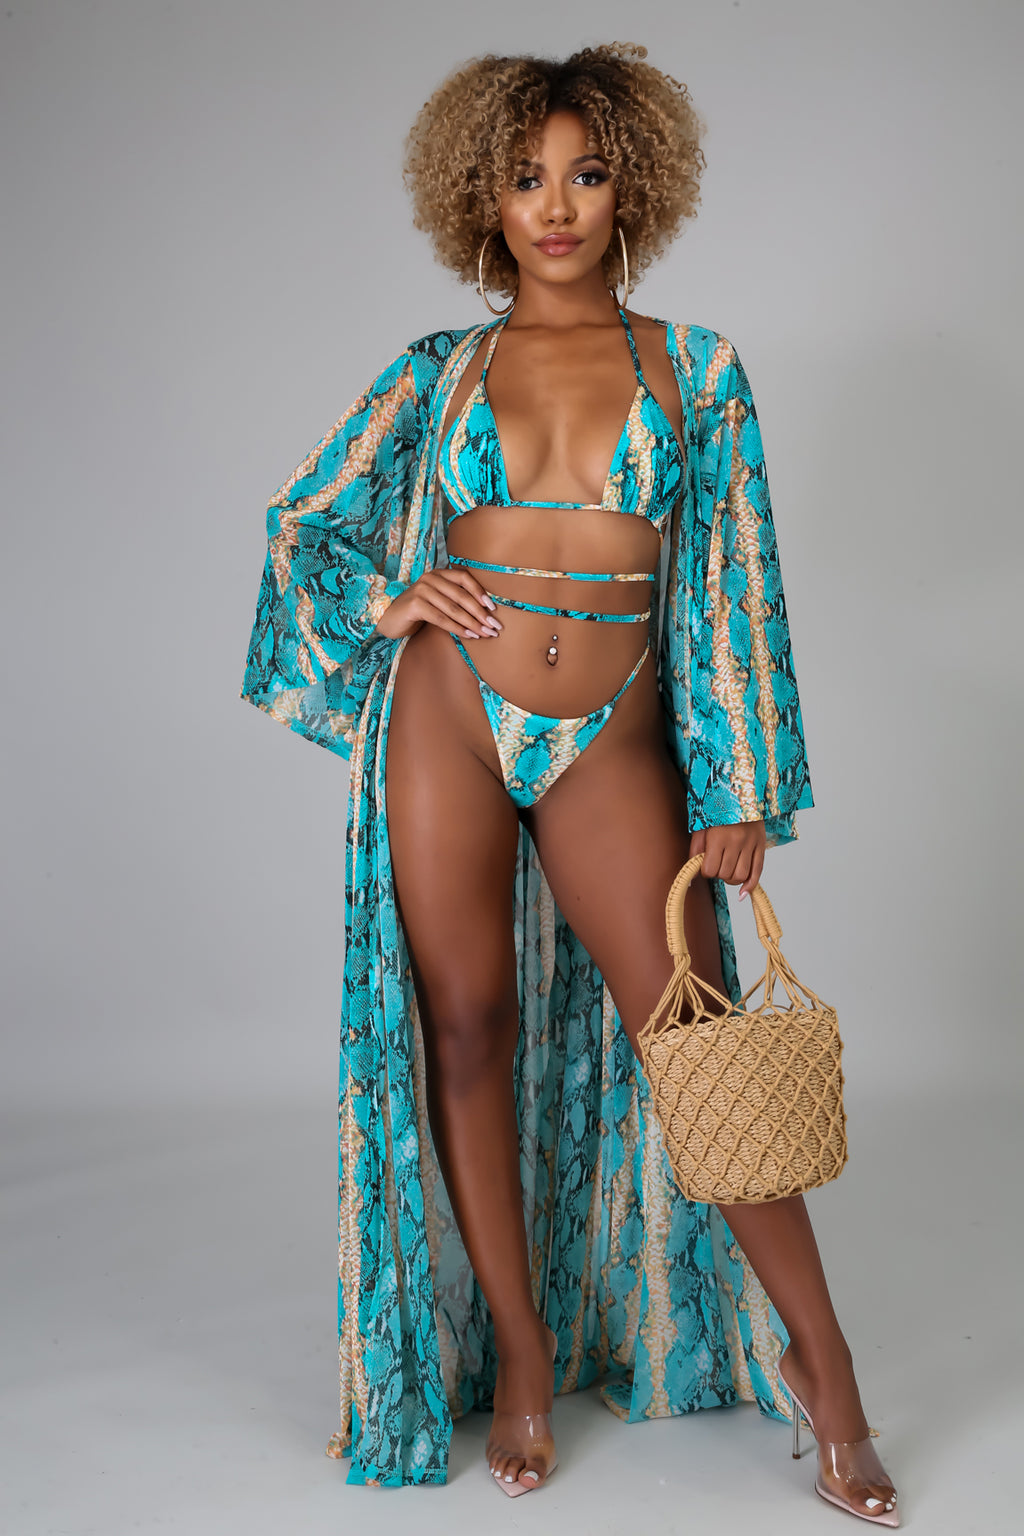 Find Me At The Beach Swim Set | GitiOnline